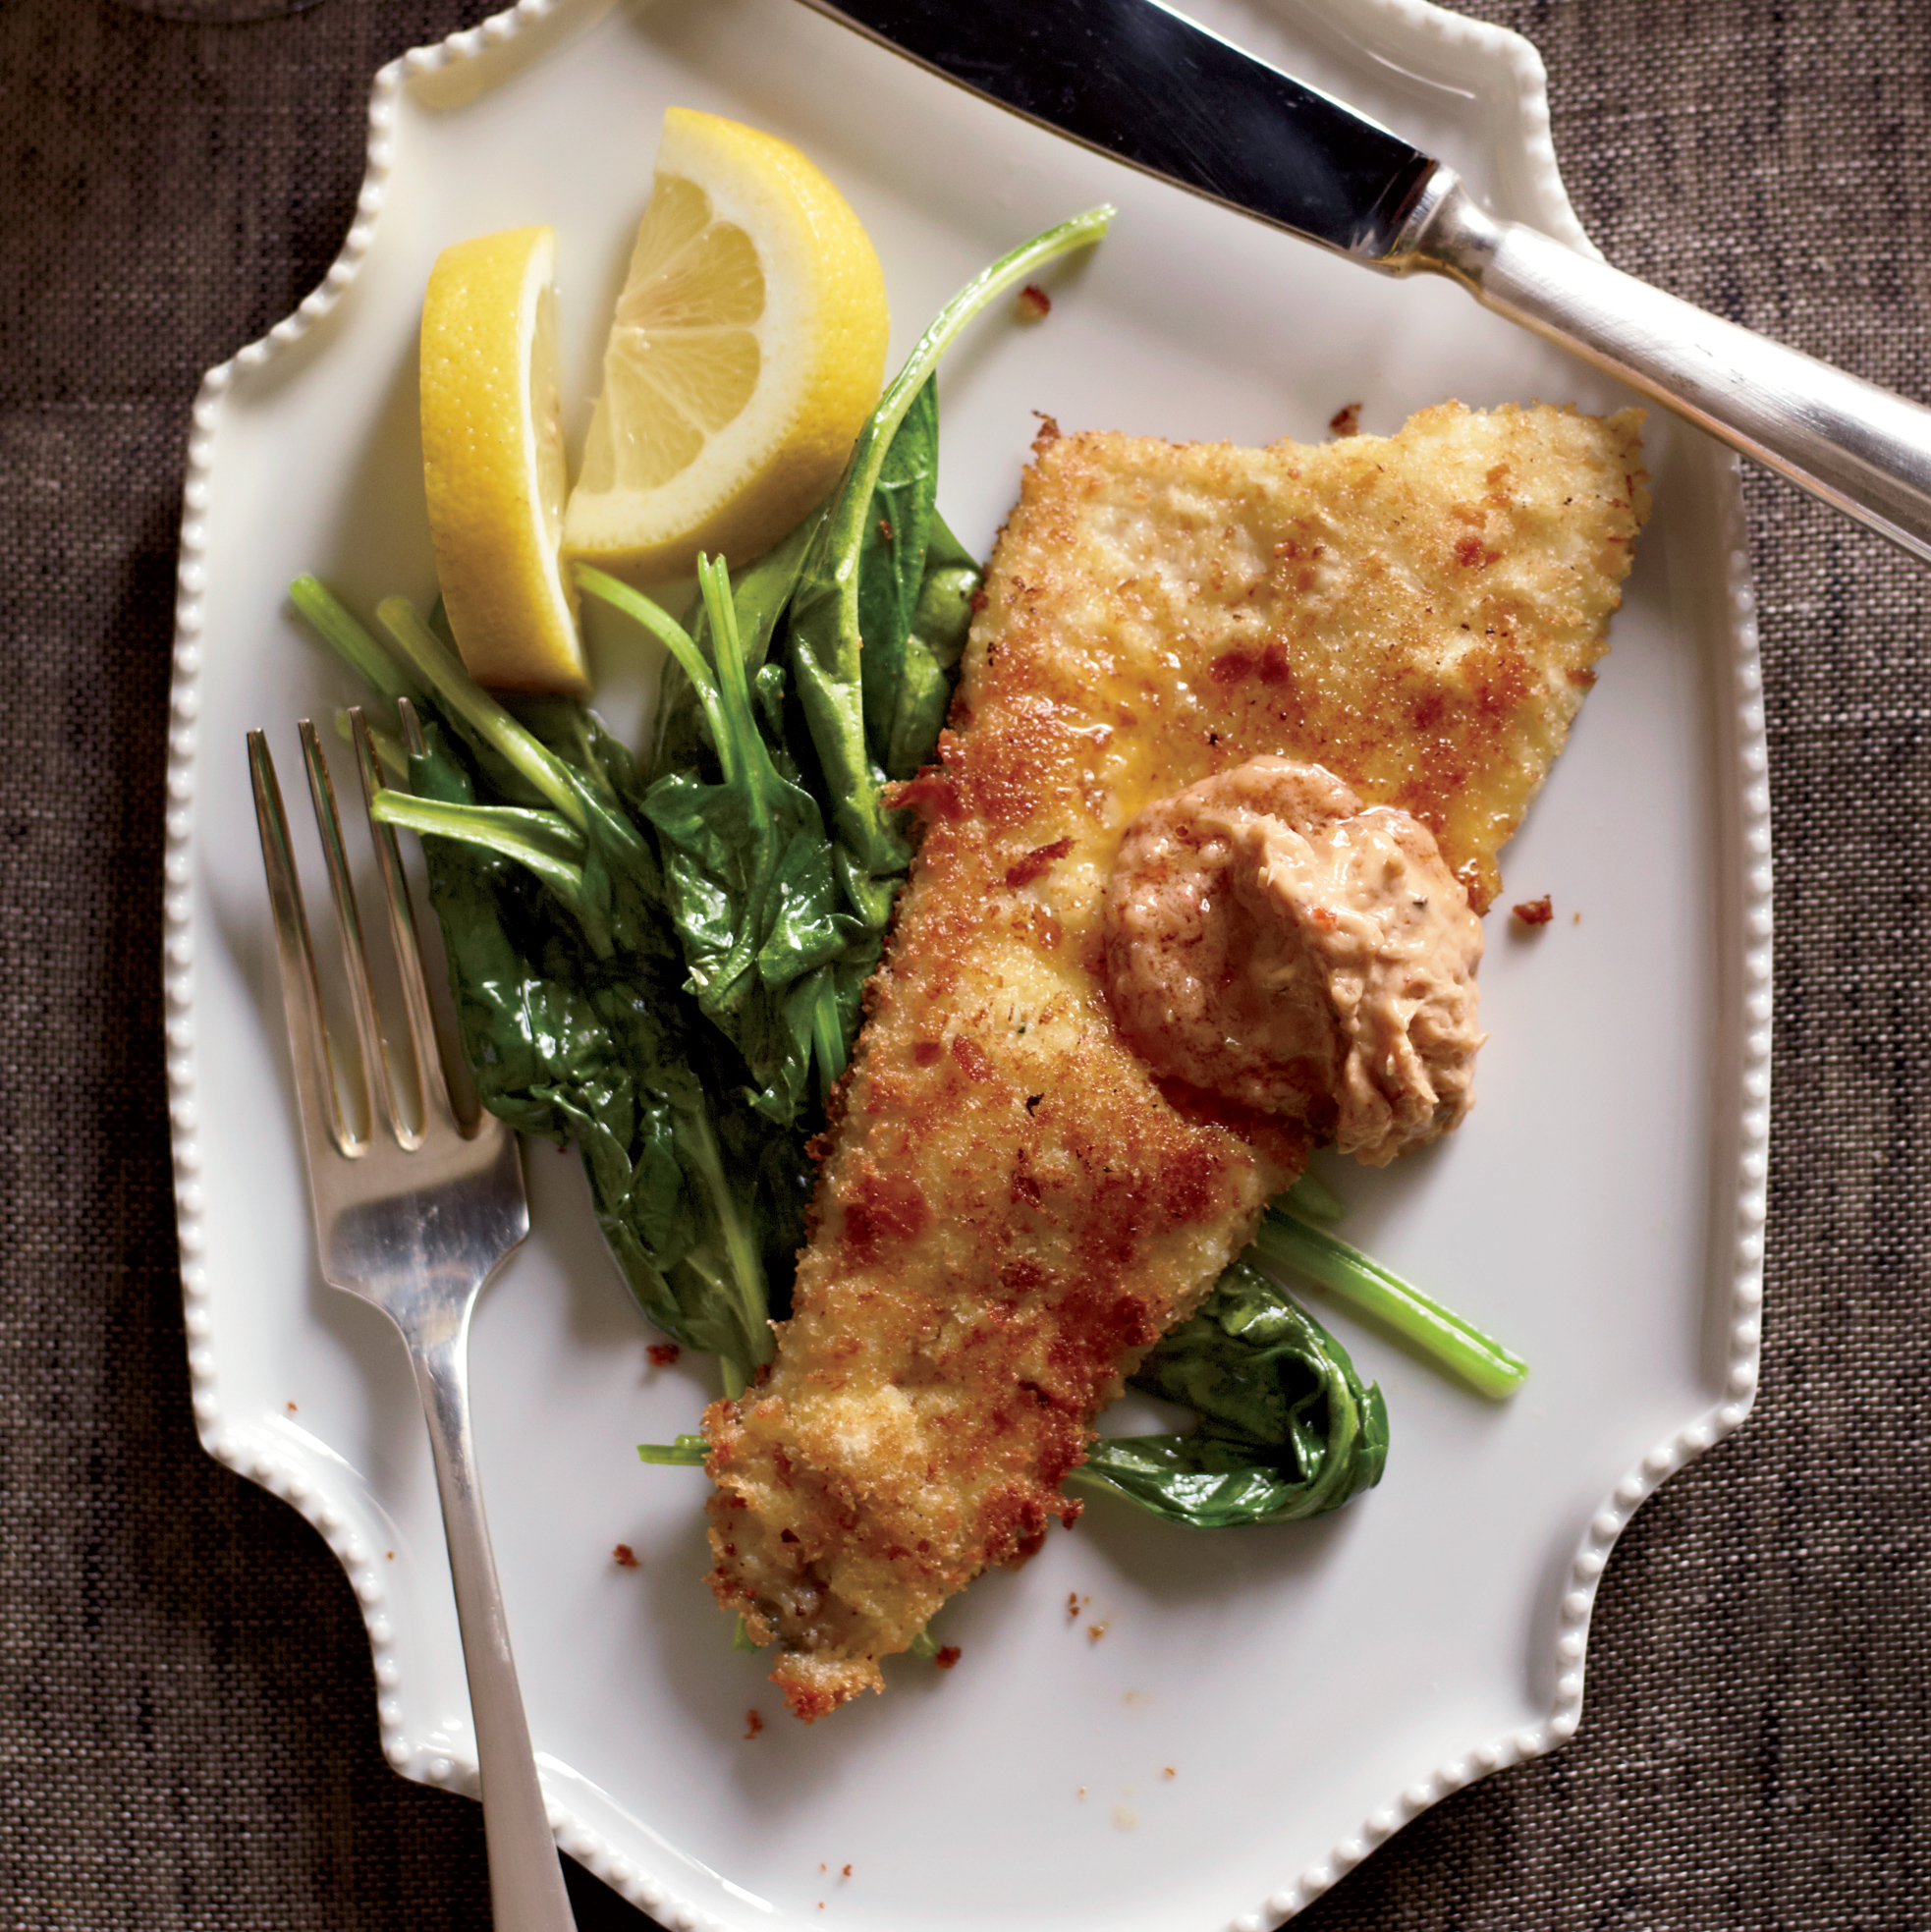 images-sys-201201-r-trout-schnitzel-with-lemon-chile-butter.jpg